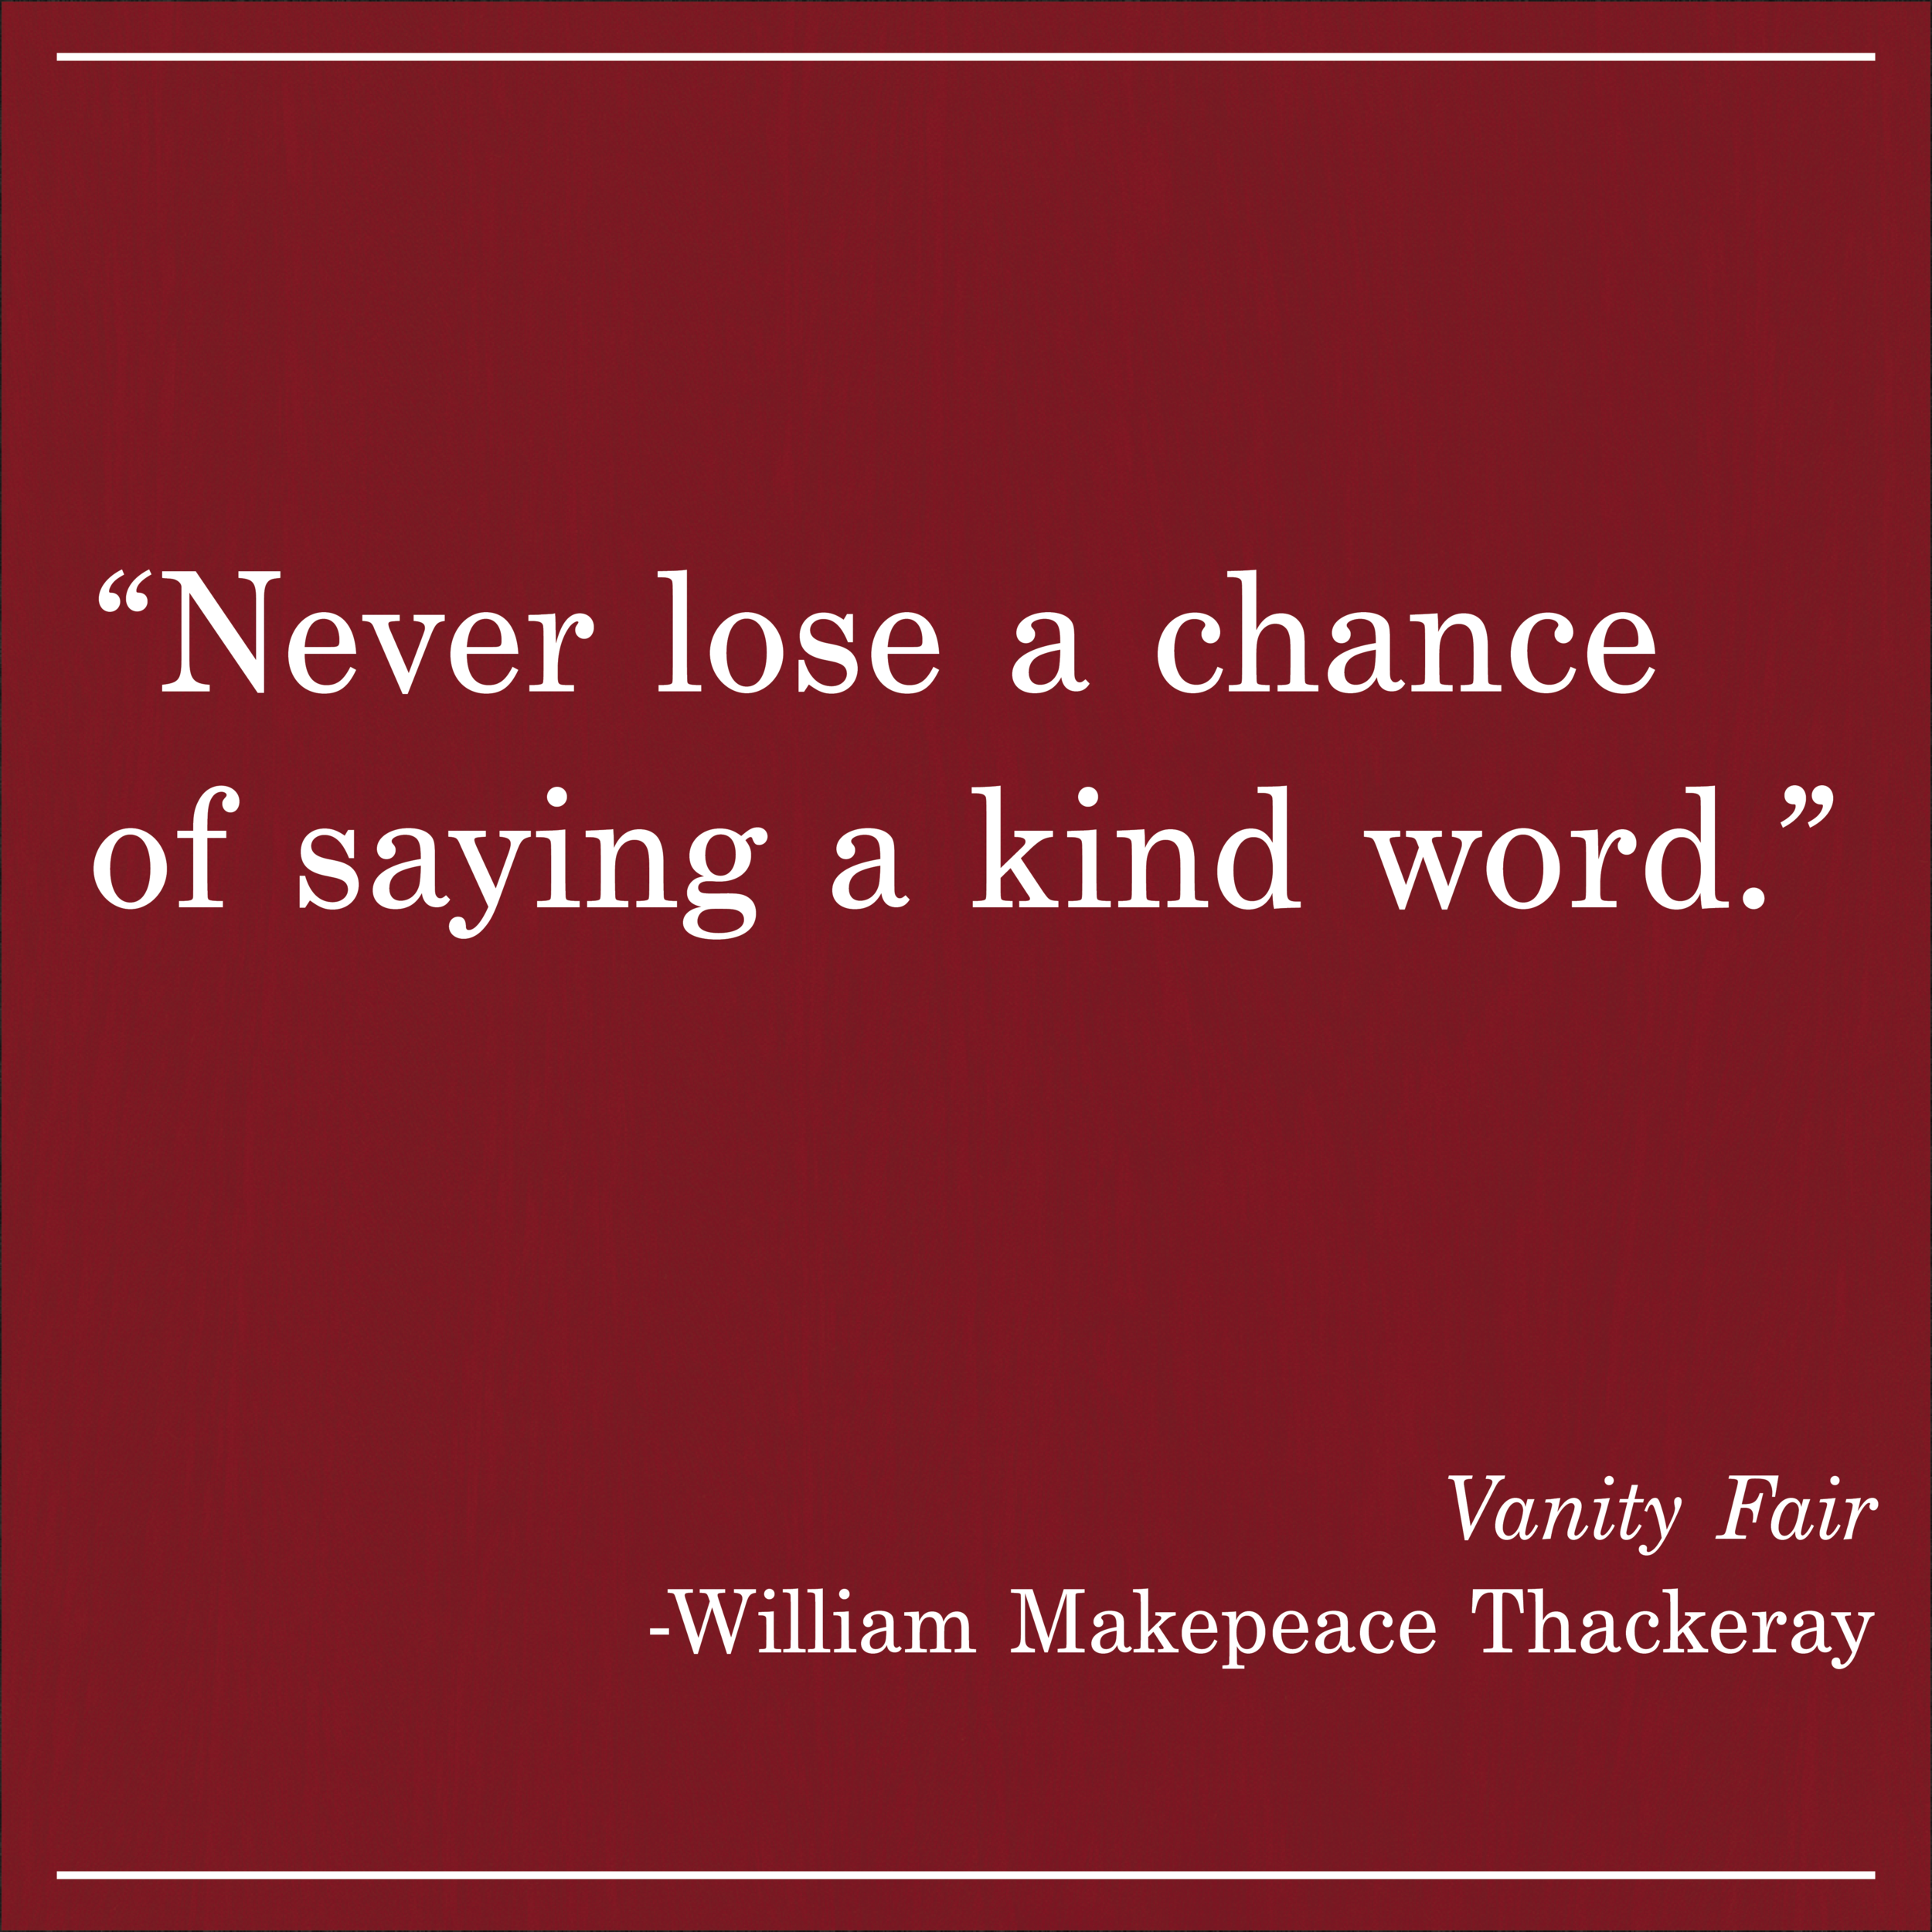 Daily Quote Vanity Fair by William Makepeace Thackeray